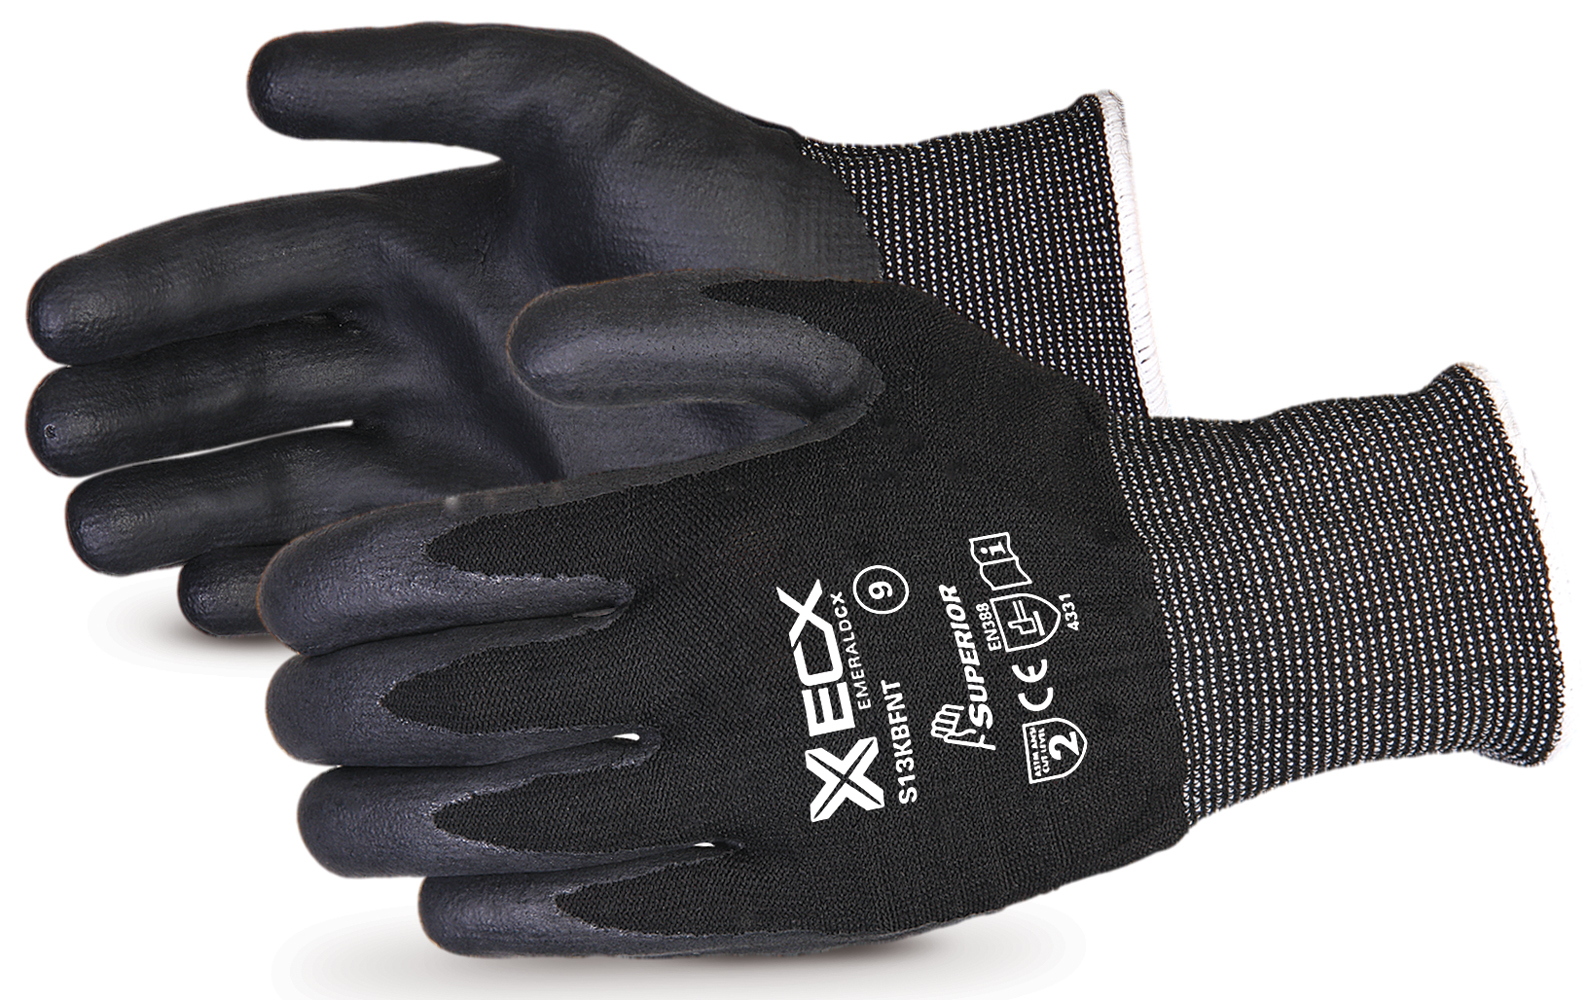 EMERALD CX NYLON/STAINLESS-STEEL CUT-RESISTANT STRING-KNIT GLOVE WITH NITRILE PALM